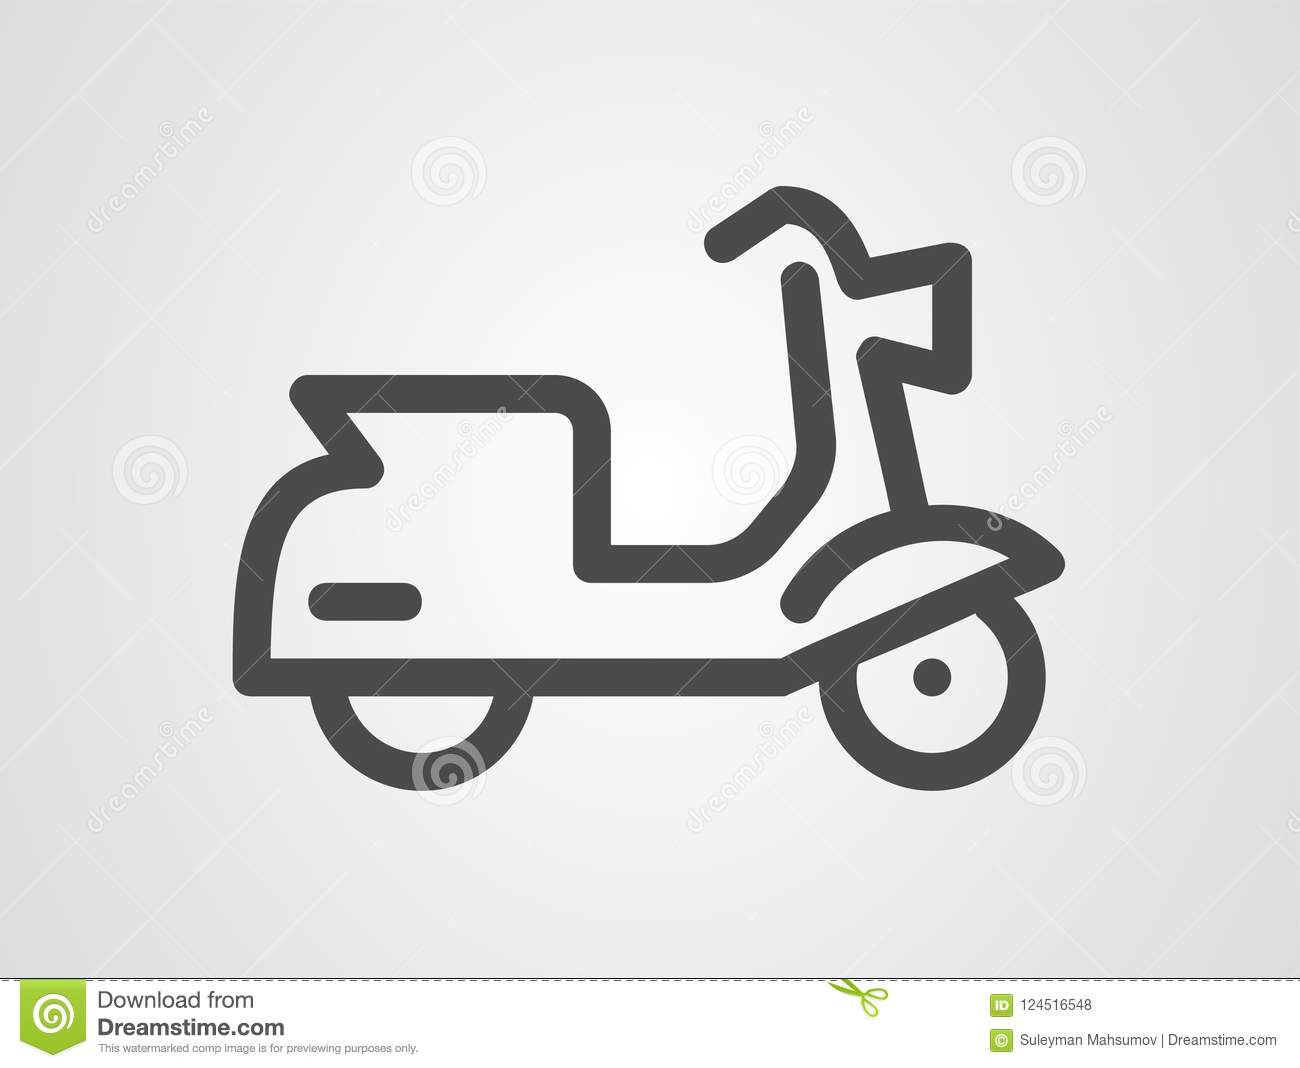 scooter vector icon sign symbol stock vector illustration of moped seat 124516548 https www dreamstime com motor scooter icon small motorcycle moped logo outline design motorbike logotype label vector illustration scooter vector image124516548